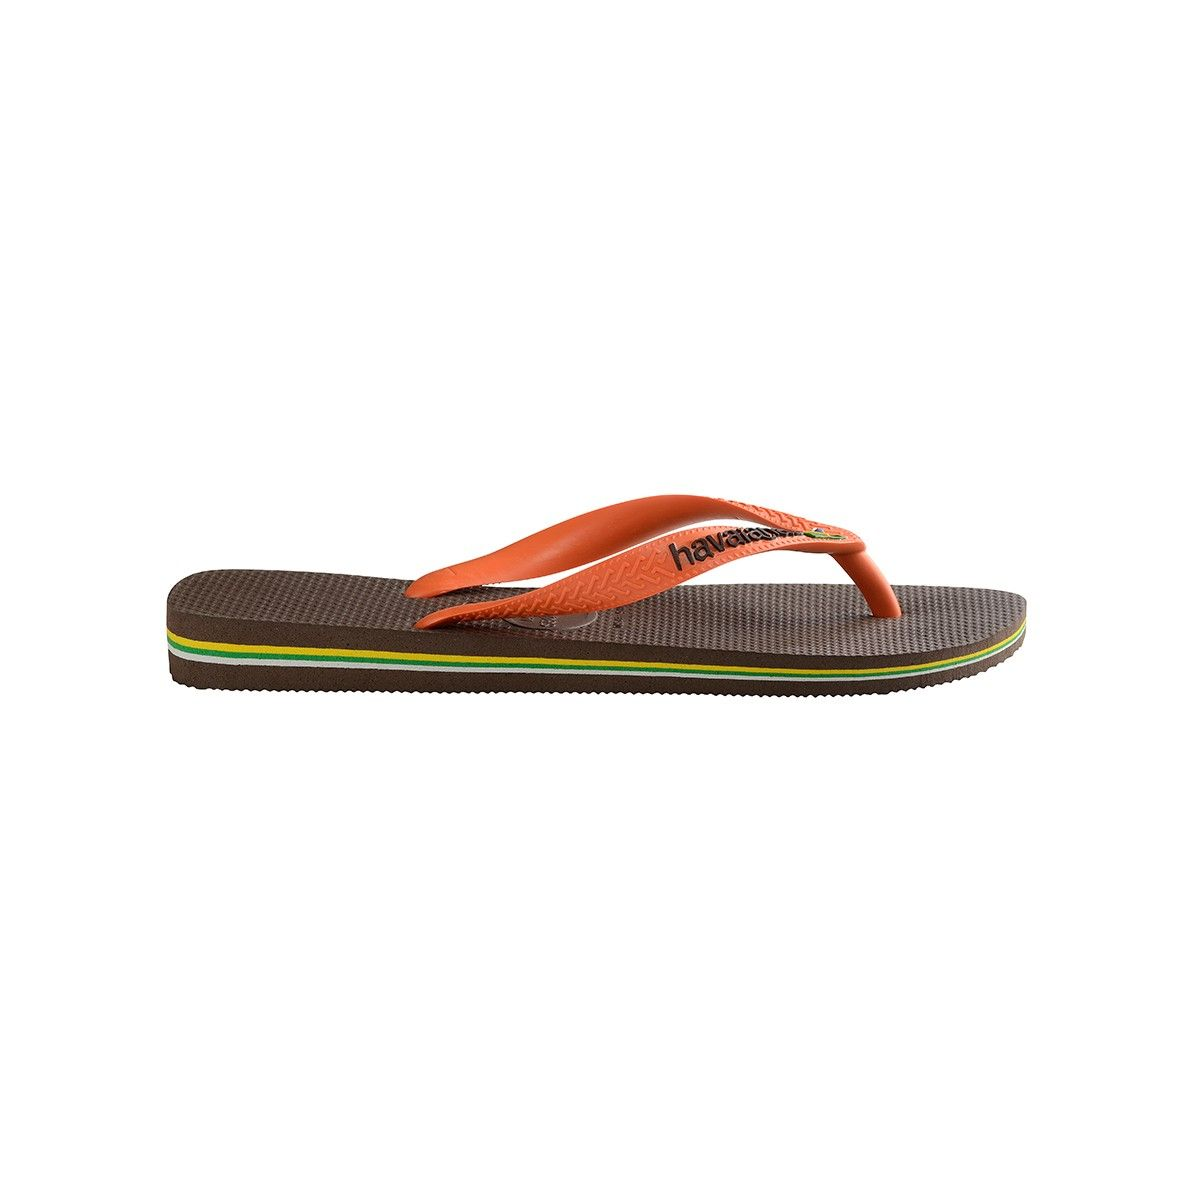 243a2b8ba59e Havaianas Brazil Logo Flip Flops Dark Brown Orange - 11 12